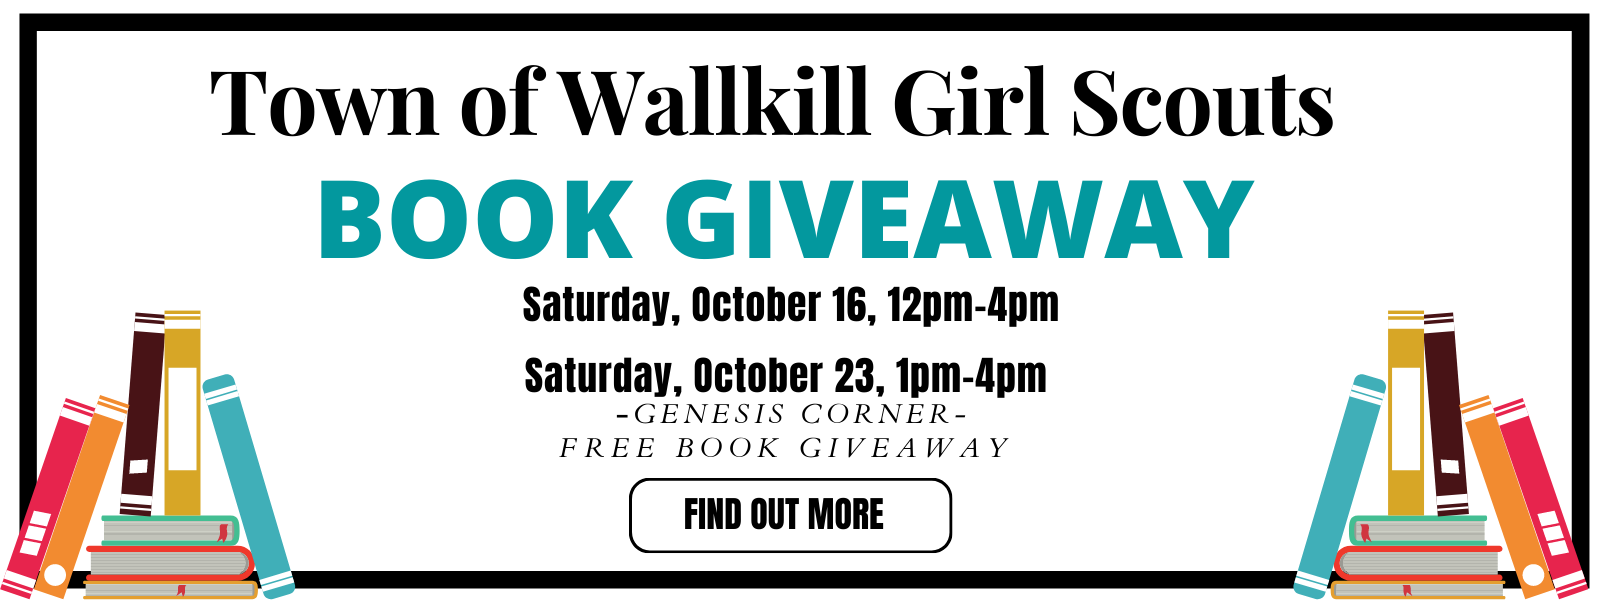 Copy of Girl Scouts Instagram Post Facebook Event Cover